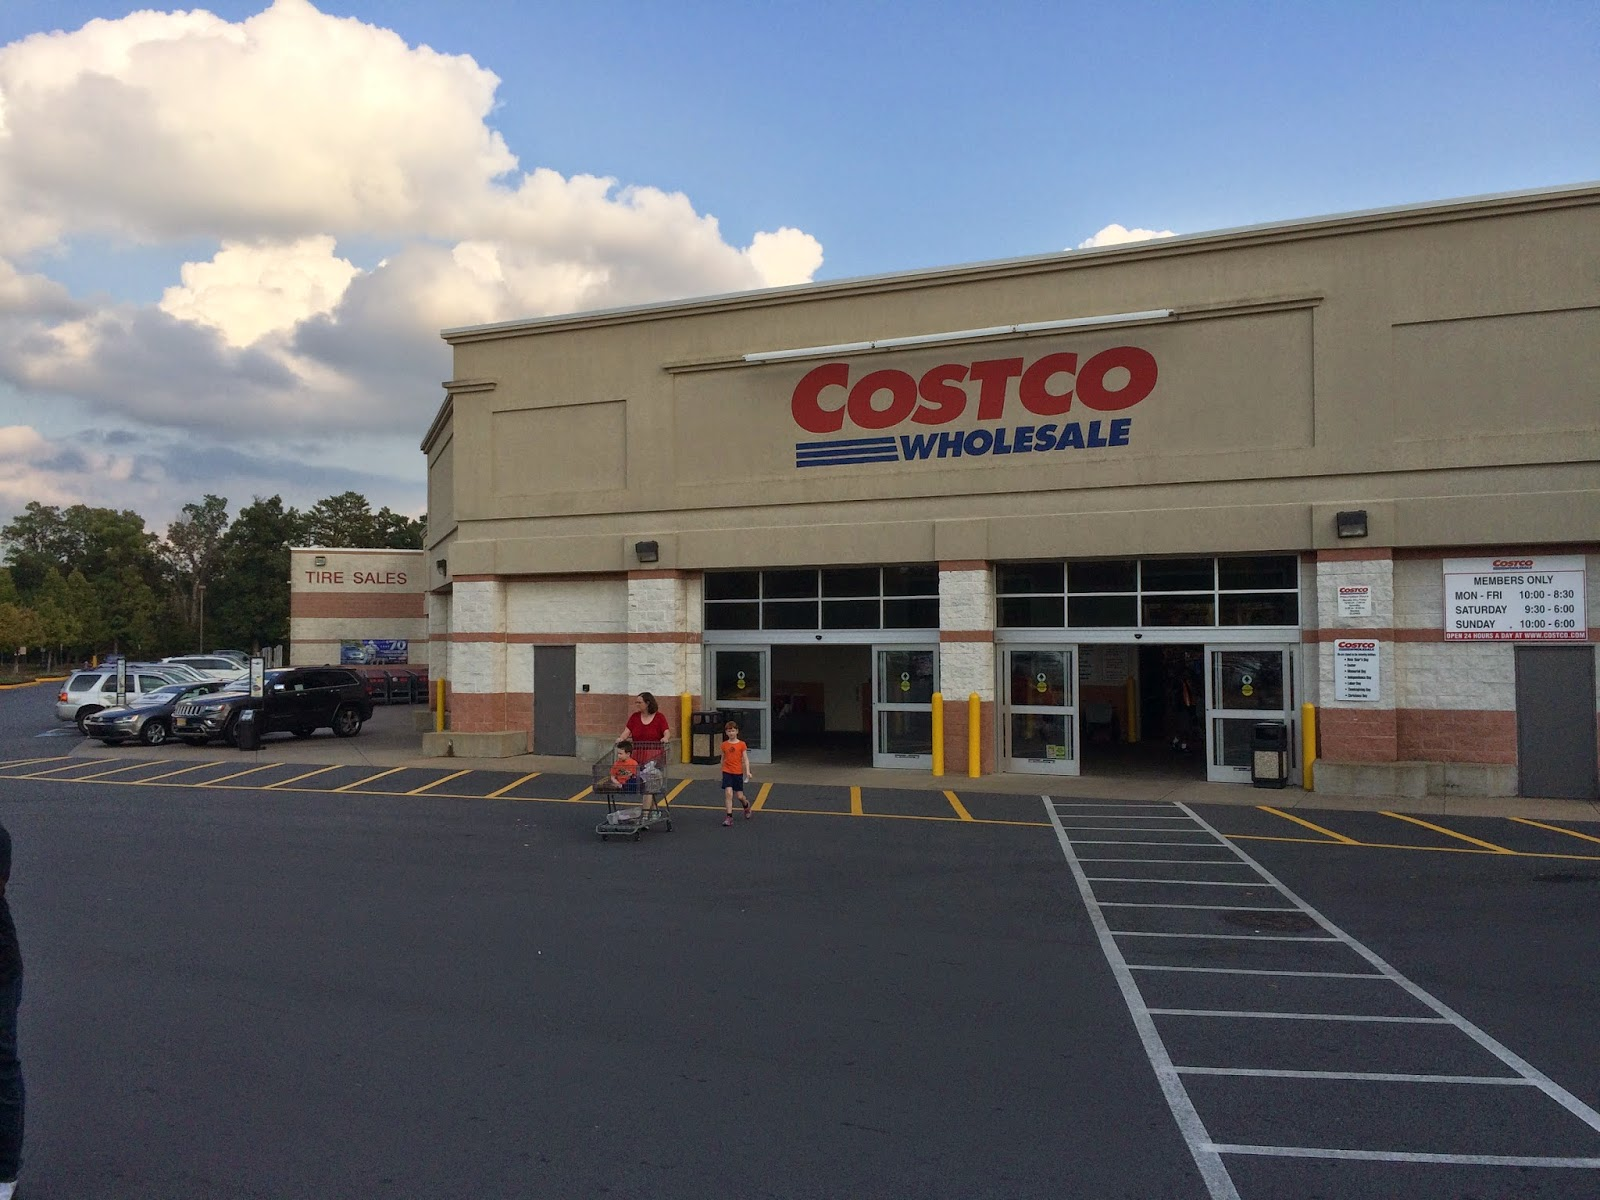 springfield things costco our nearby costco moved into springfield in 1992 i think it was prior to that we had to schlep into fairfax to procure our enormous quantities of food and